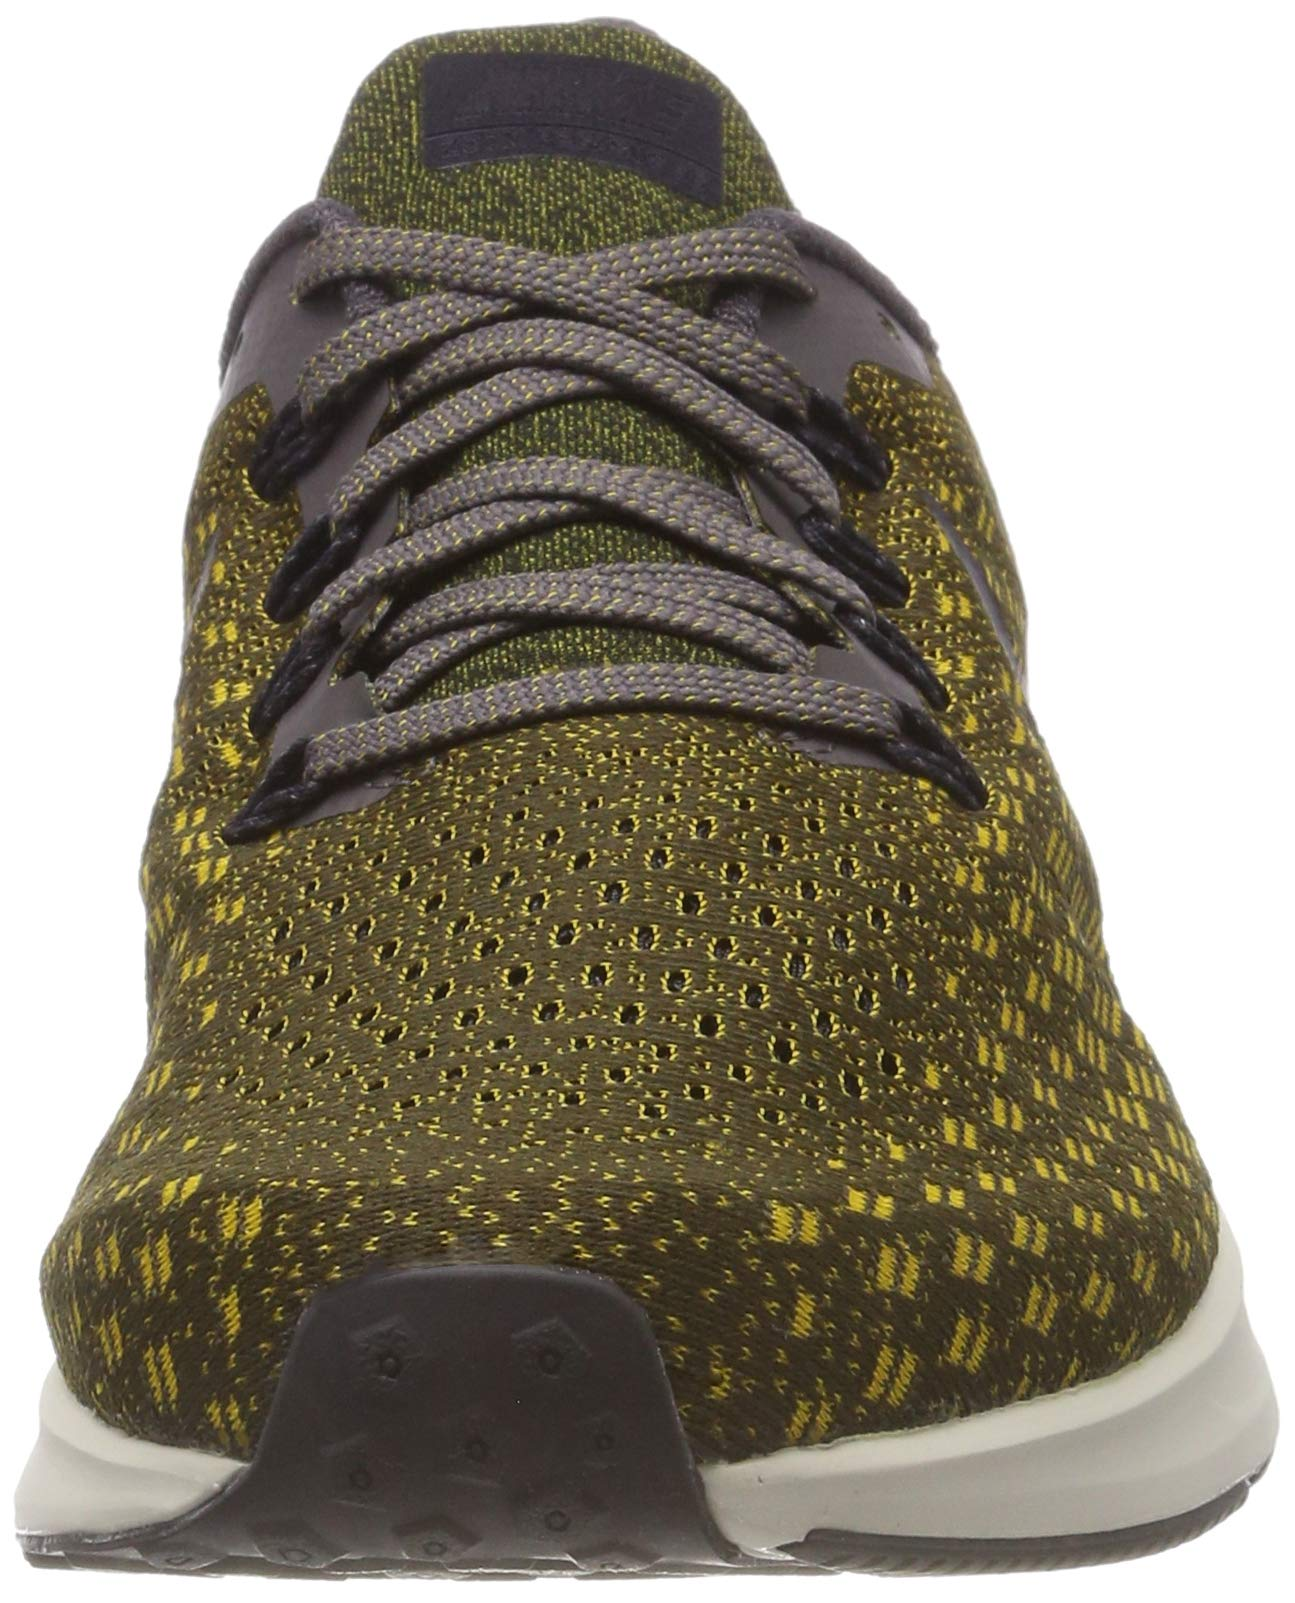 NIKE Men's Air Zoom Pegasus 35 Running Shoes (6, Olive) by Nike (Image #4)